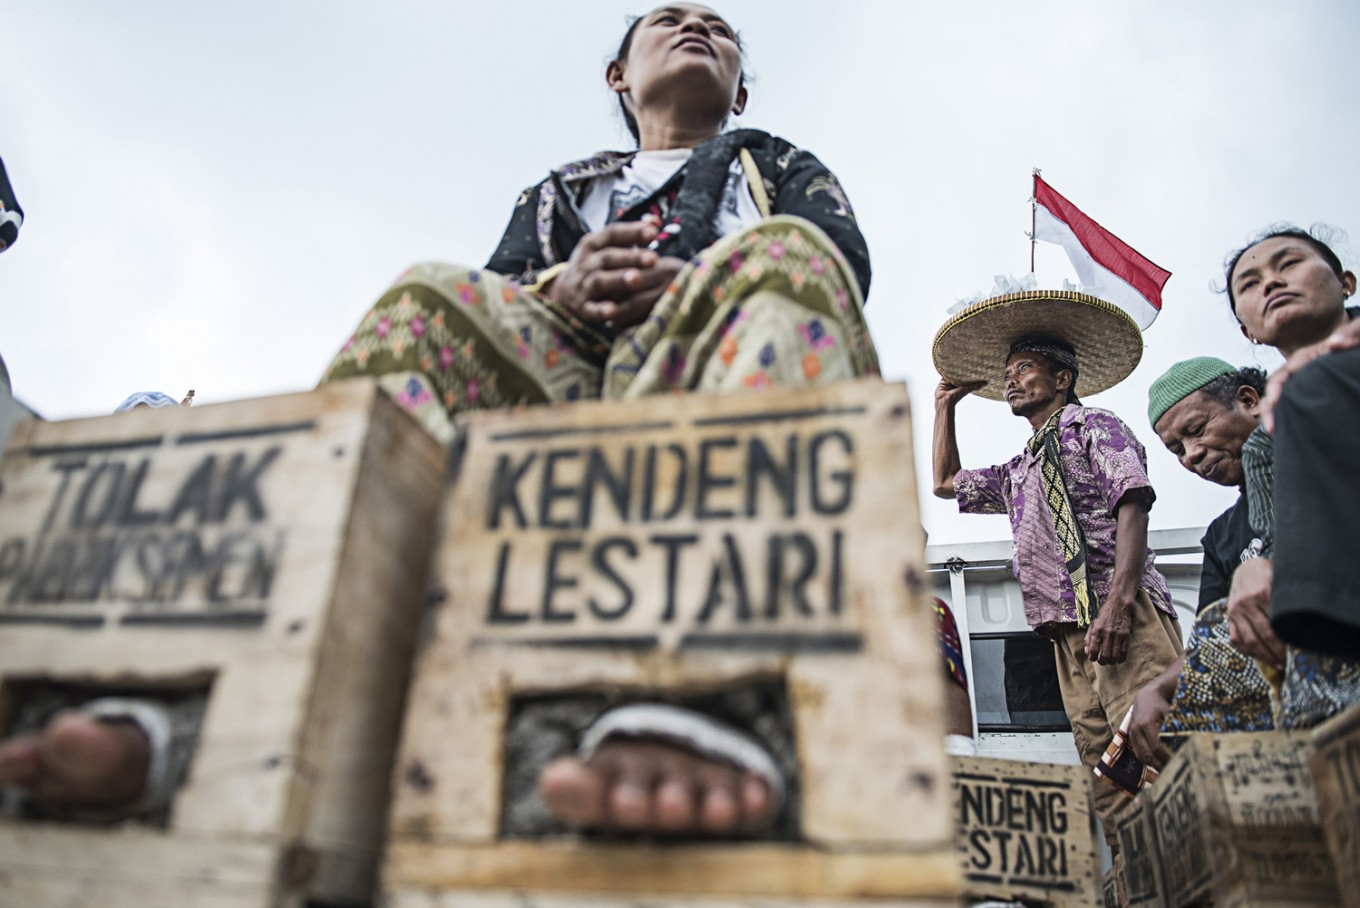 Supreme Court ruling on construction of Kendeng cement factory must be obeyed